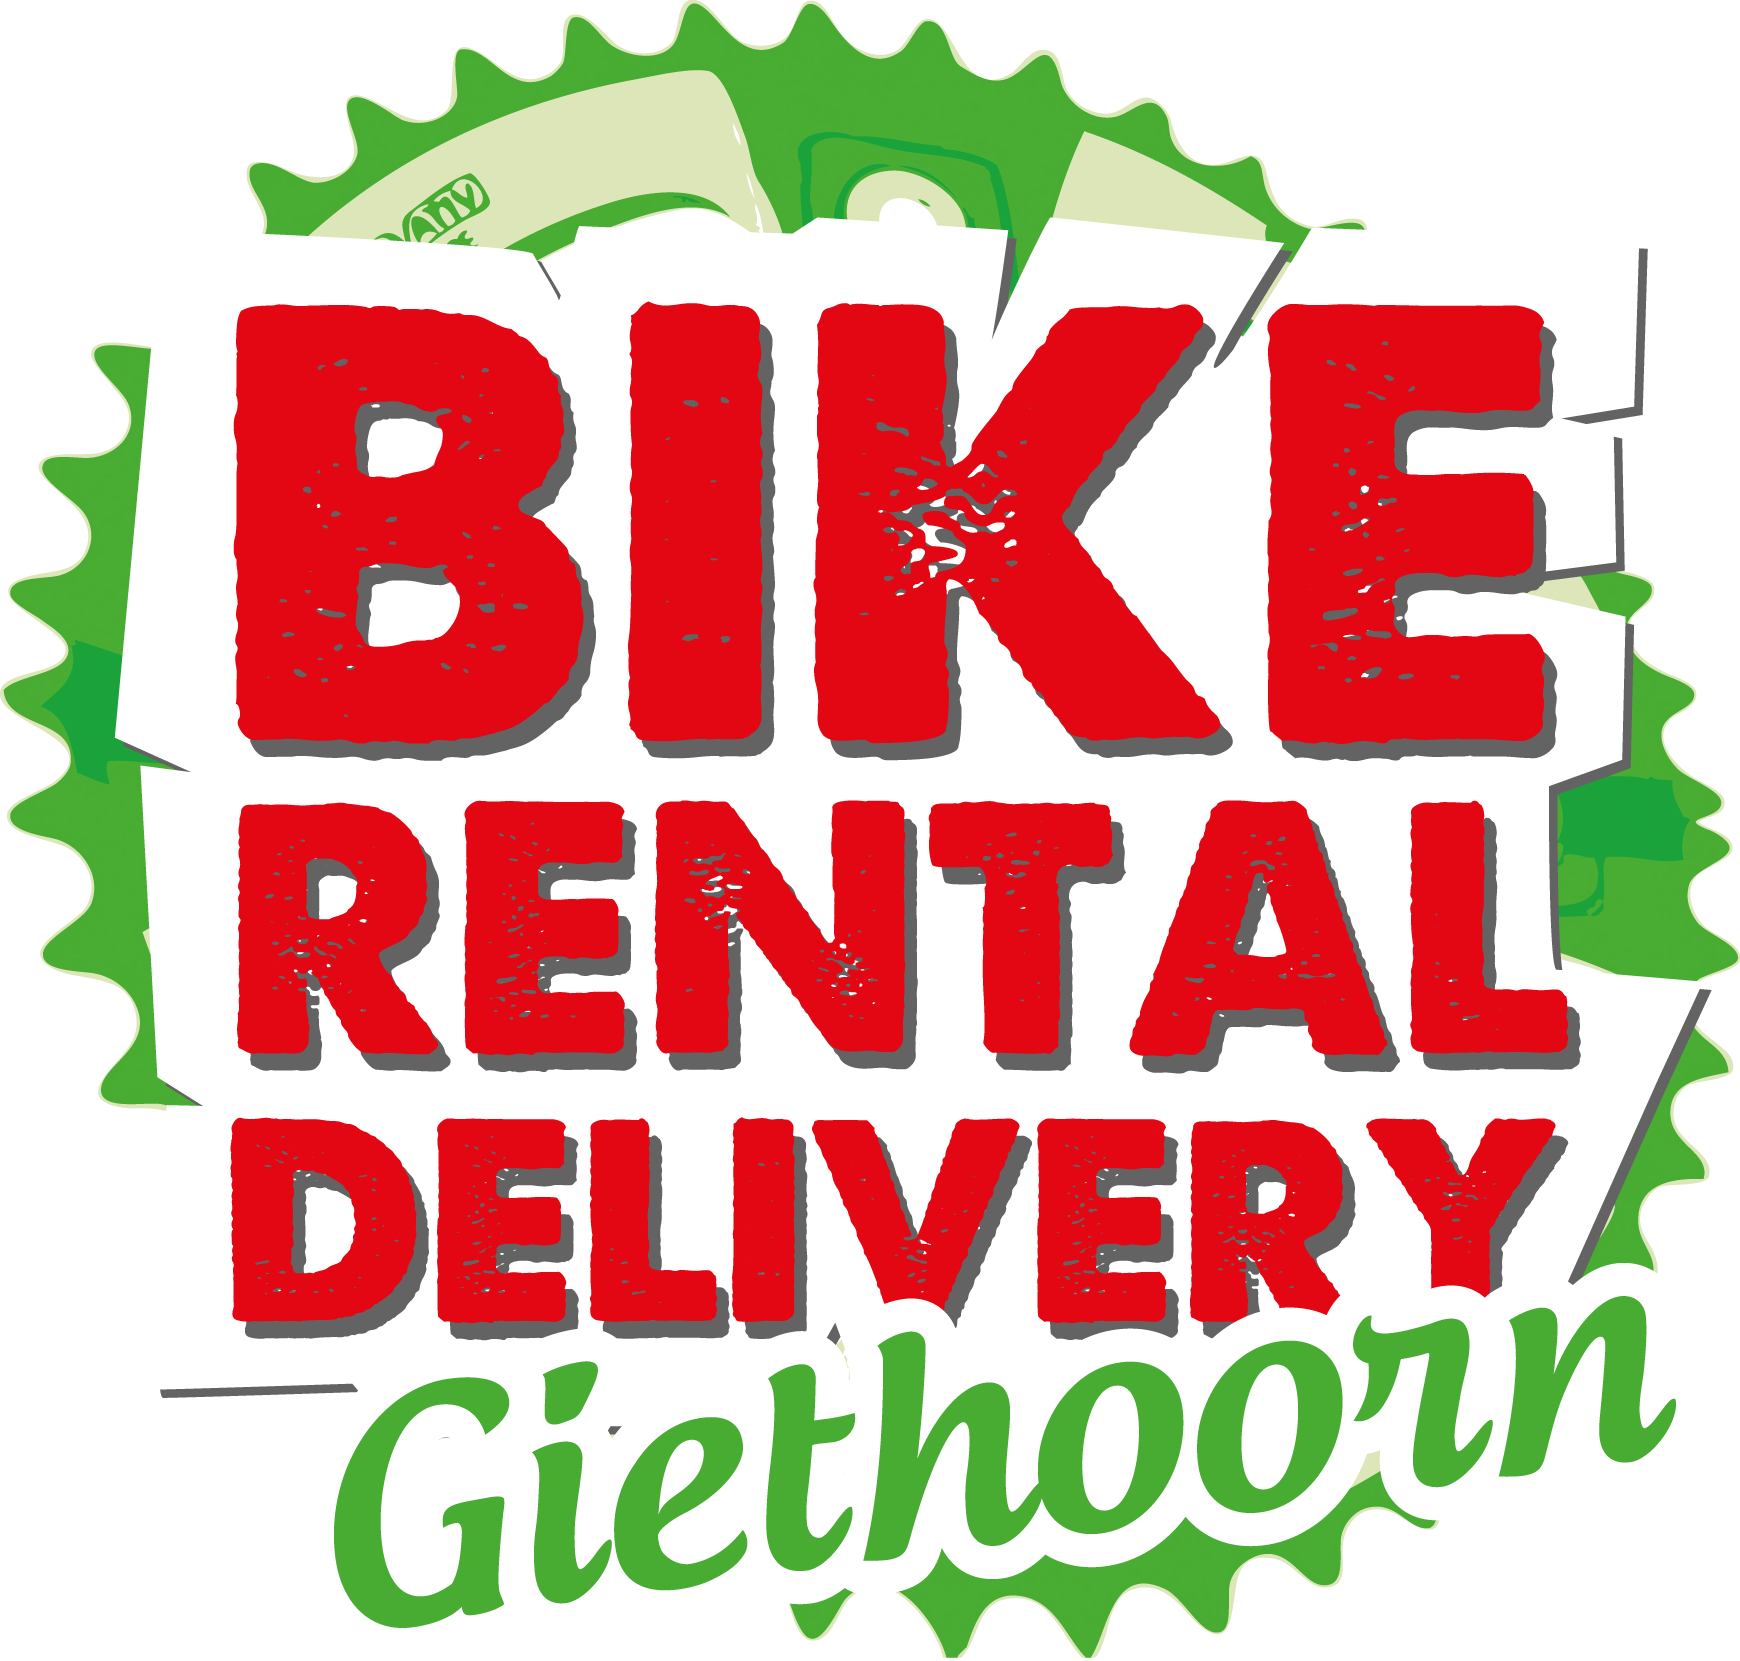 Bike and Watersport rental delivery